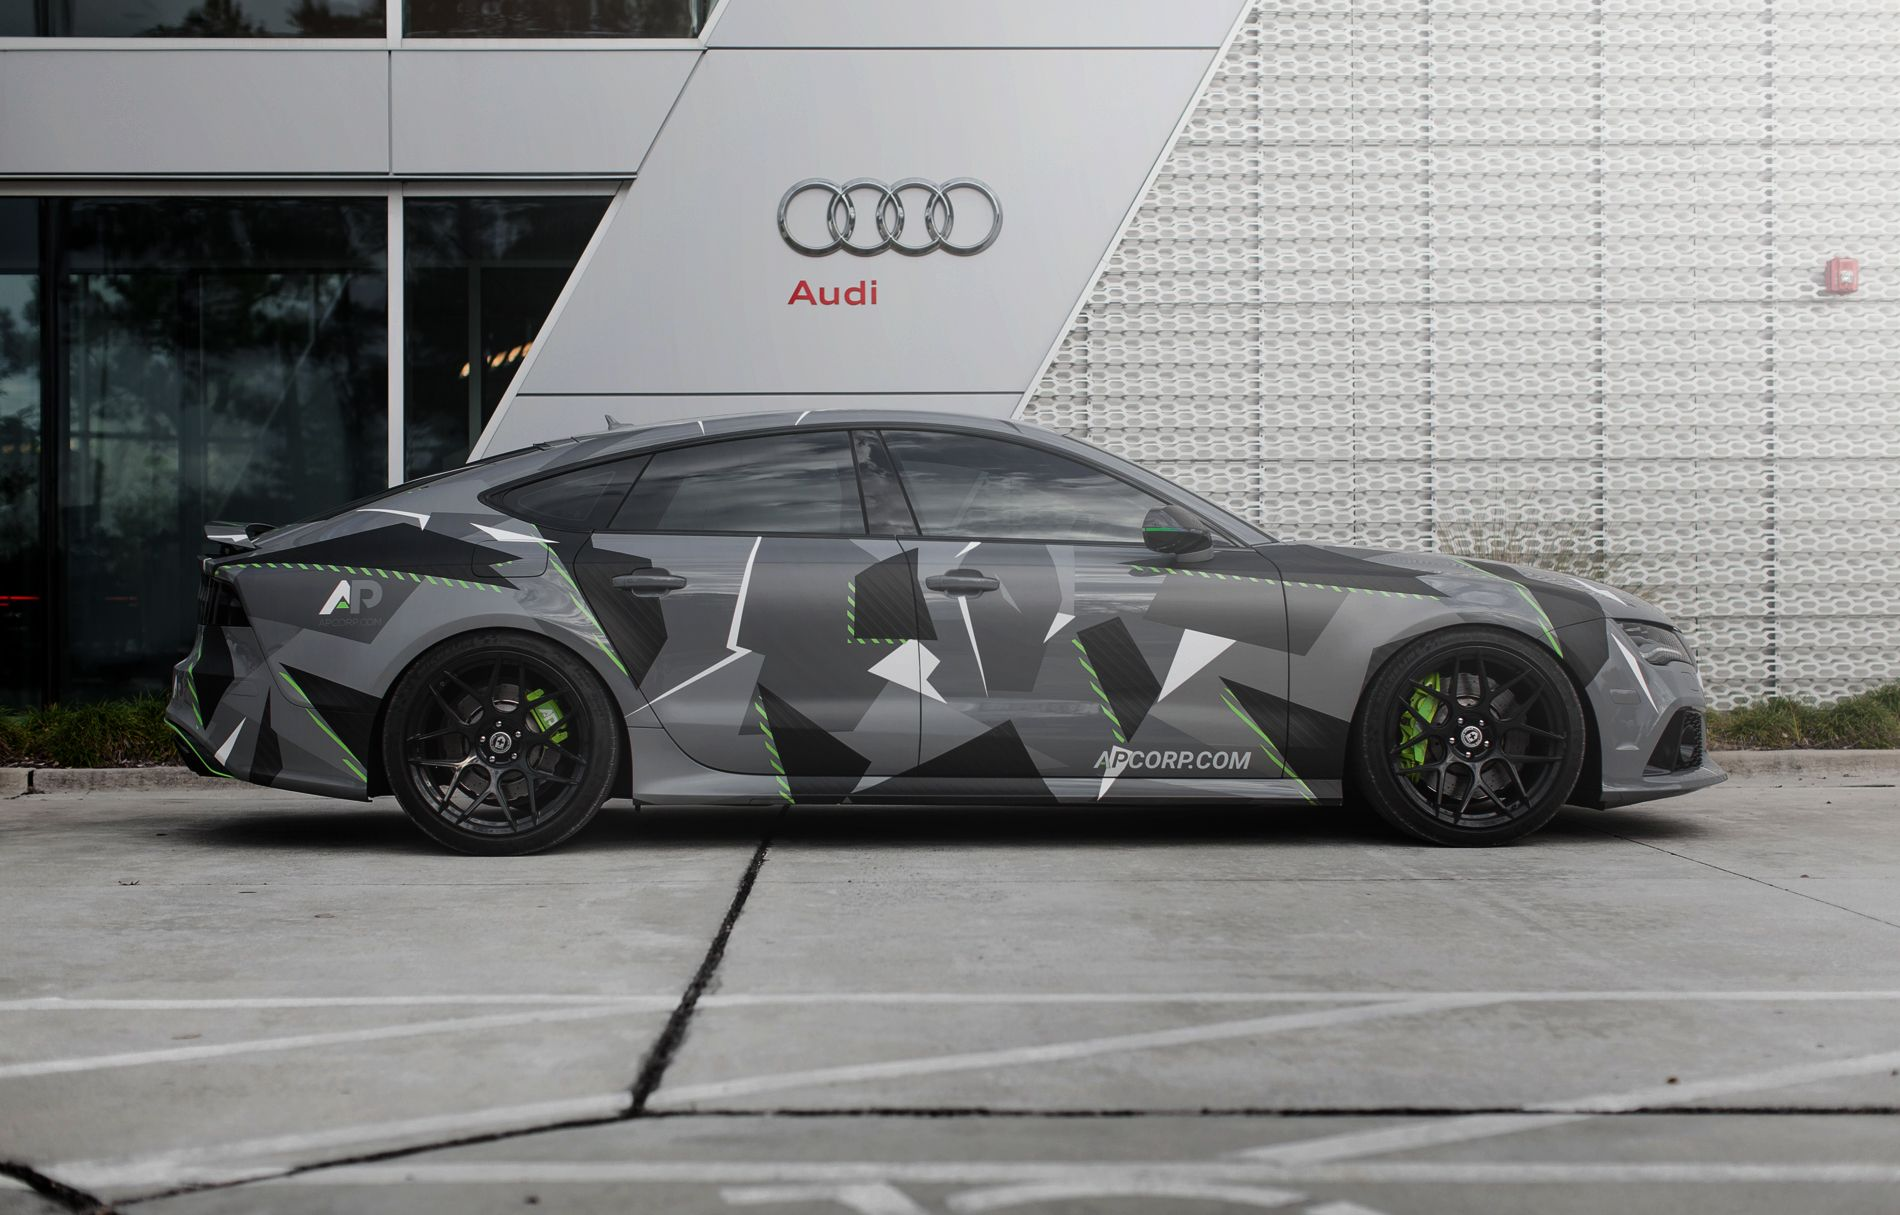 Killer Custom Wrapped Audi Rs7 From Ap Tinting Other Audi Audi